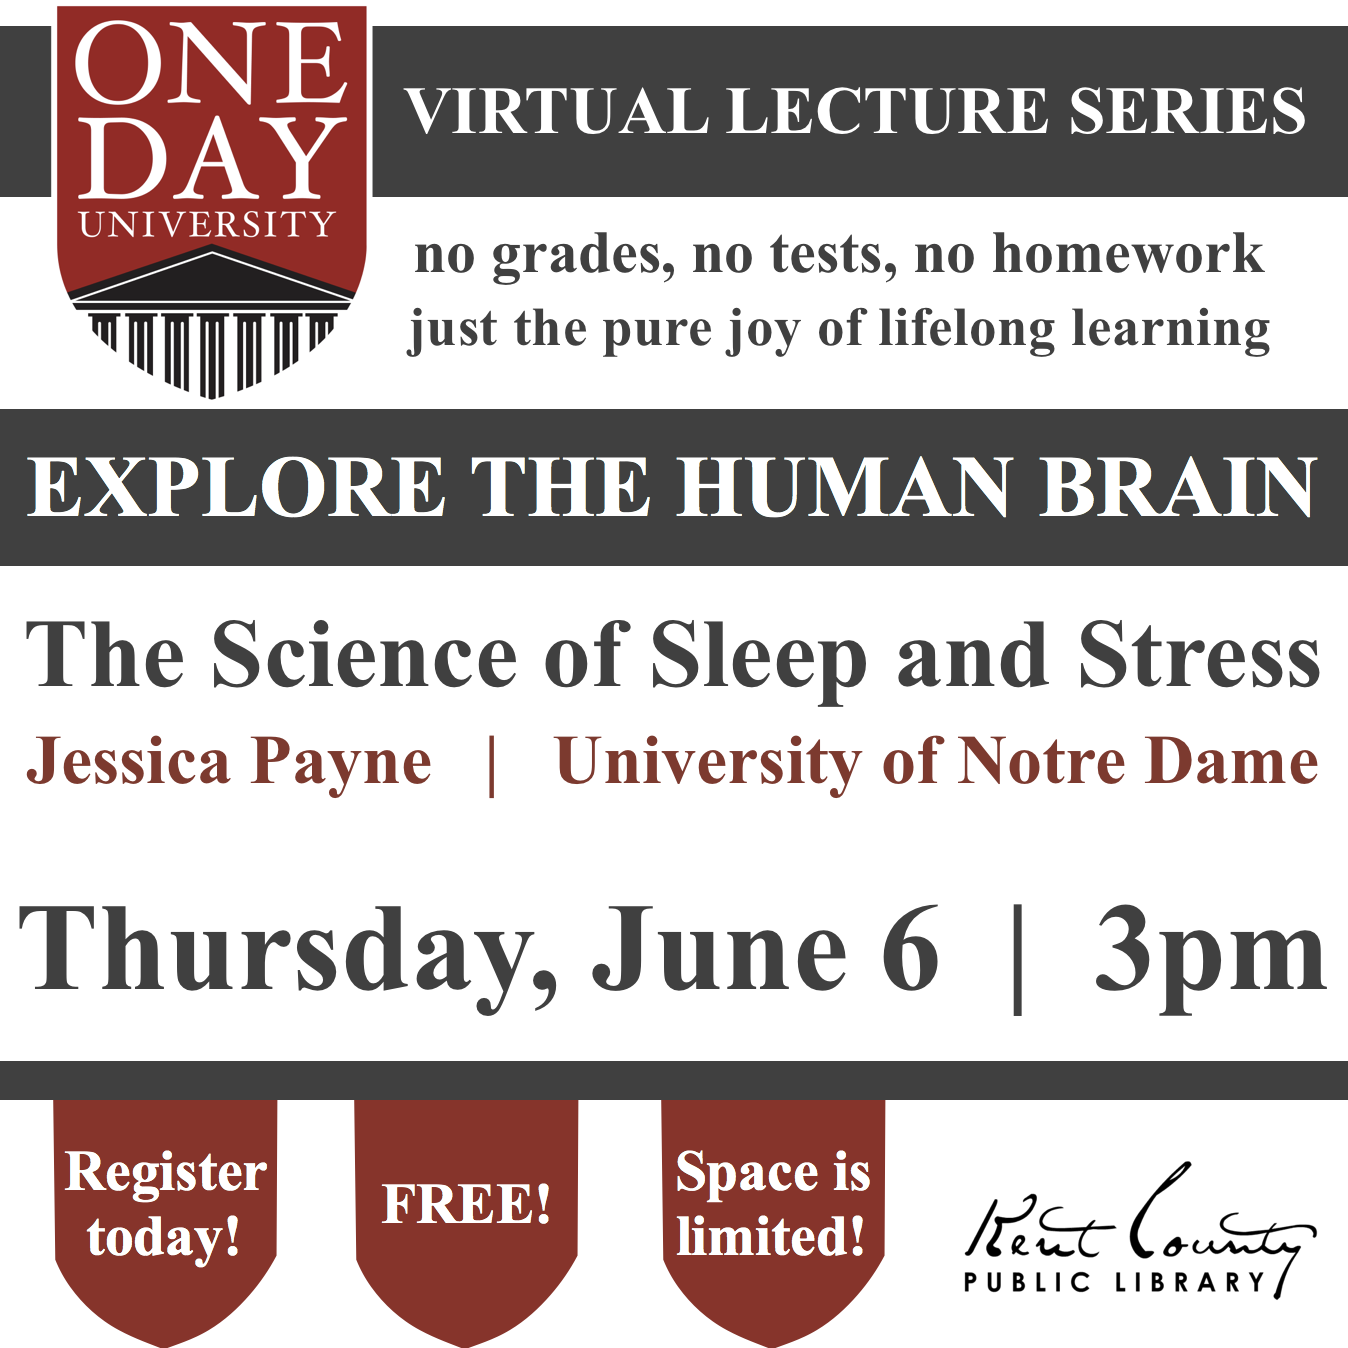 One Day University: The Science of Sleep and Stress